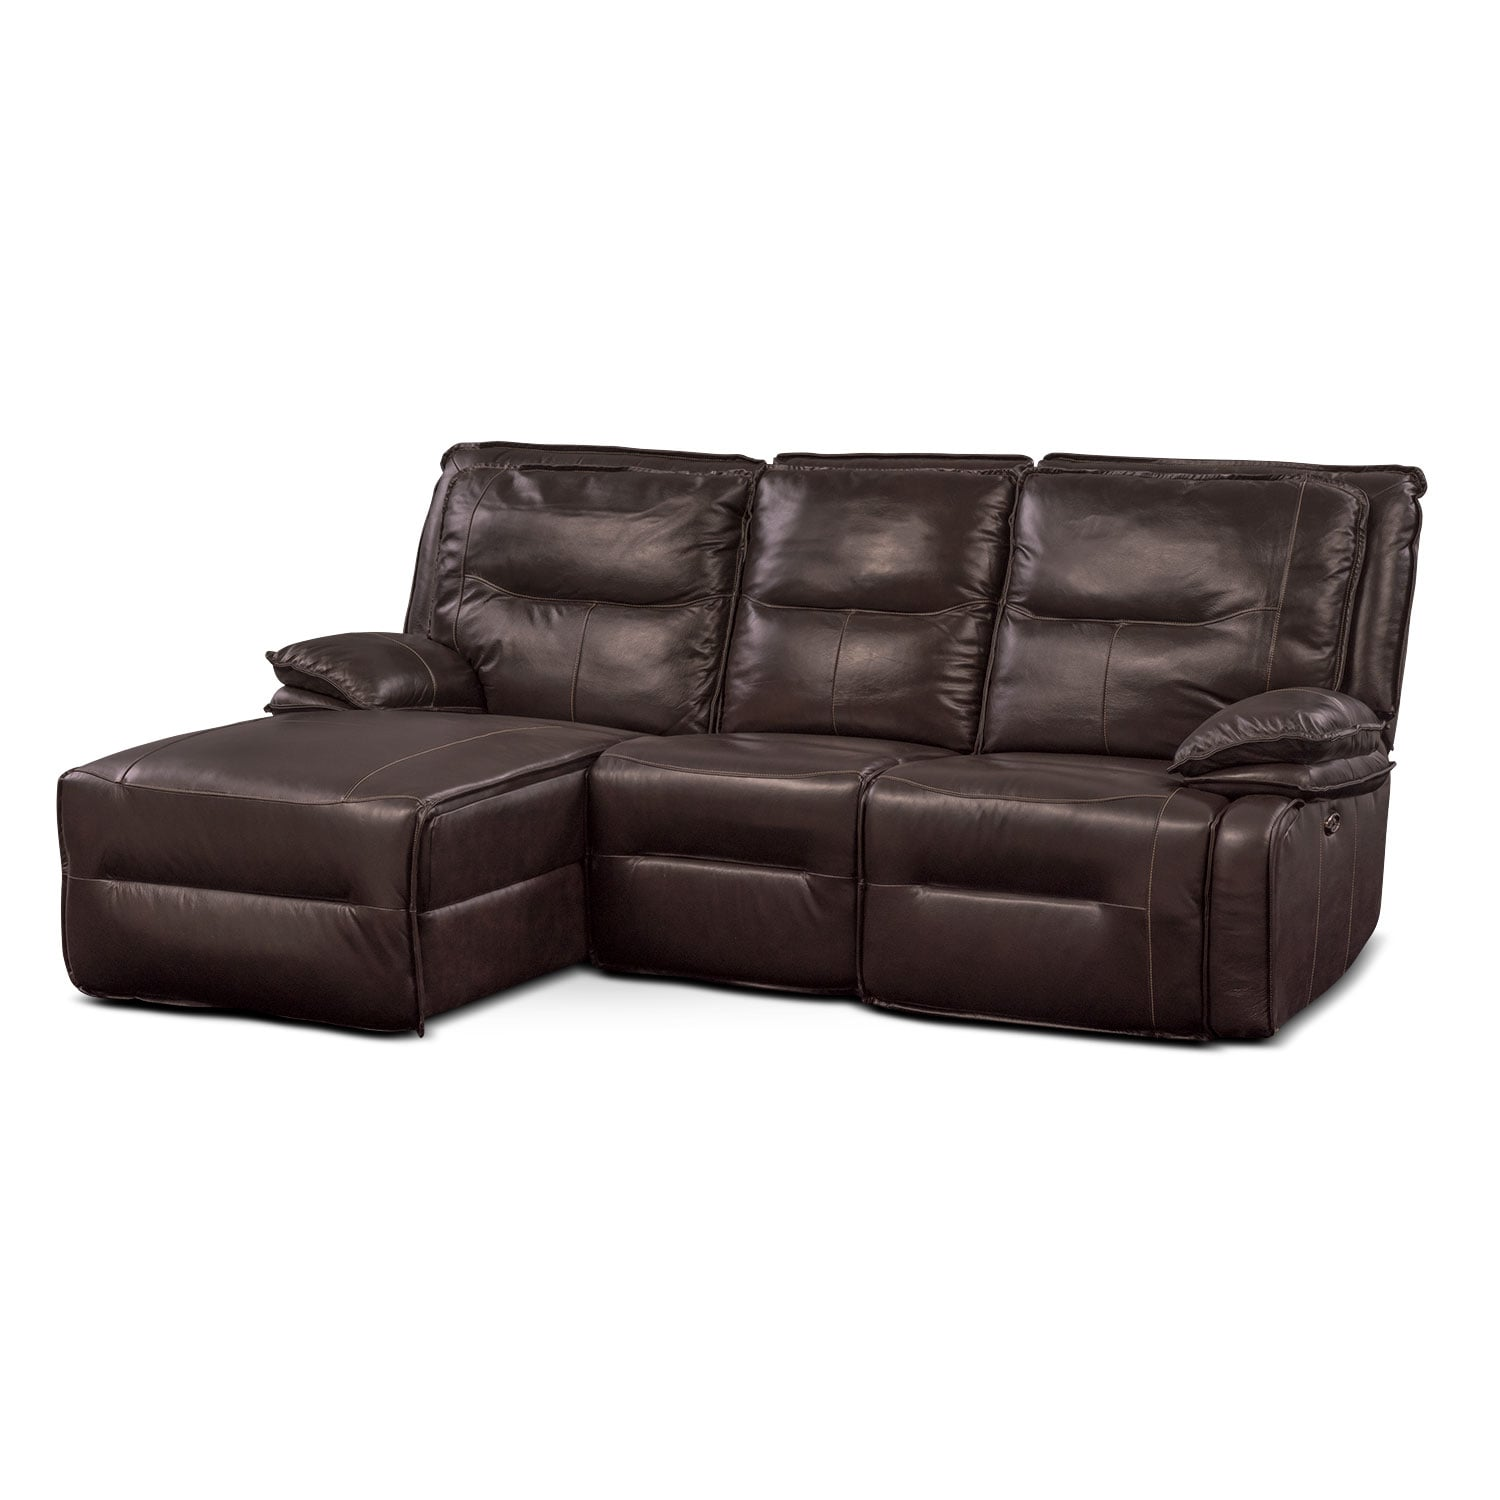 Nikki 3 Piece Power Reclining Sectional with Left Facing Chaise